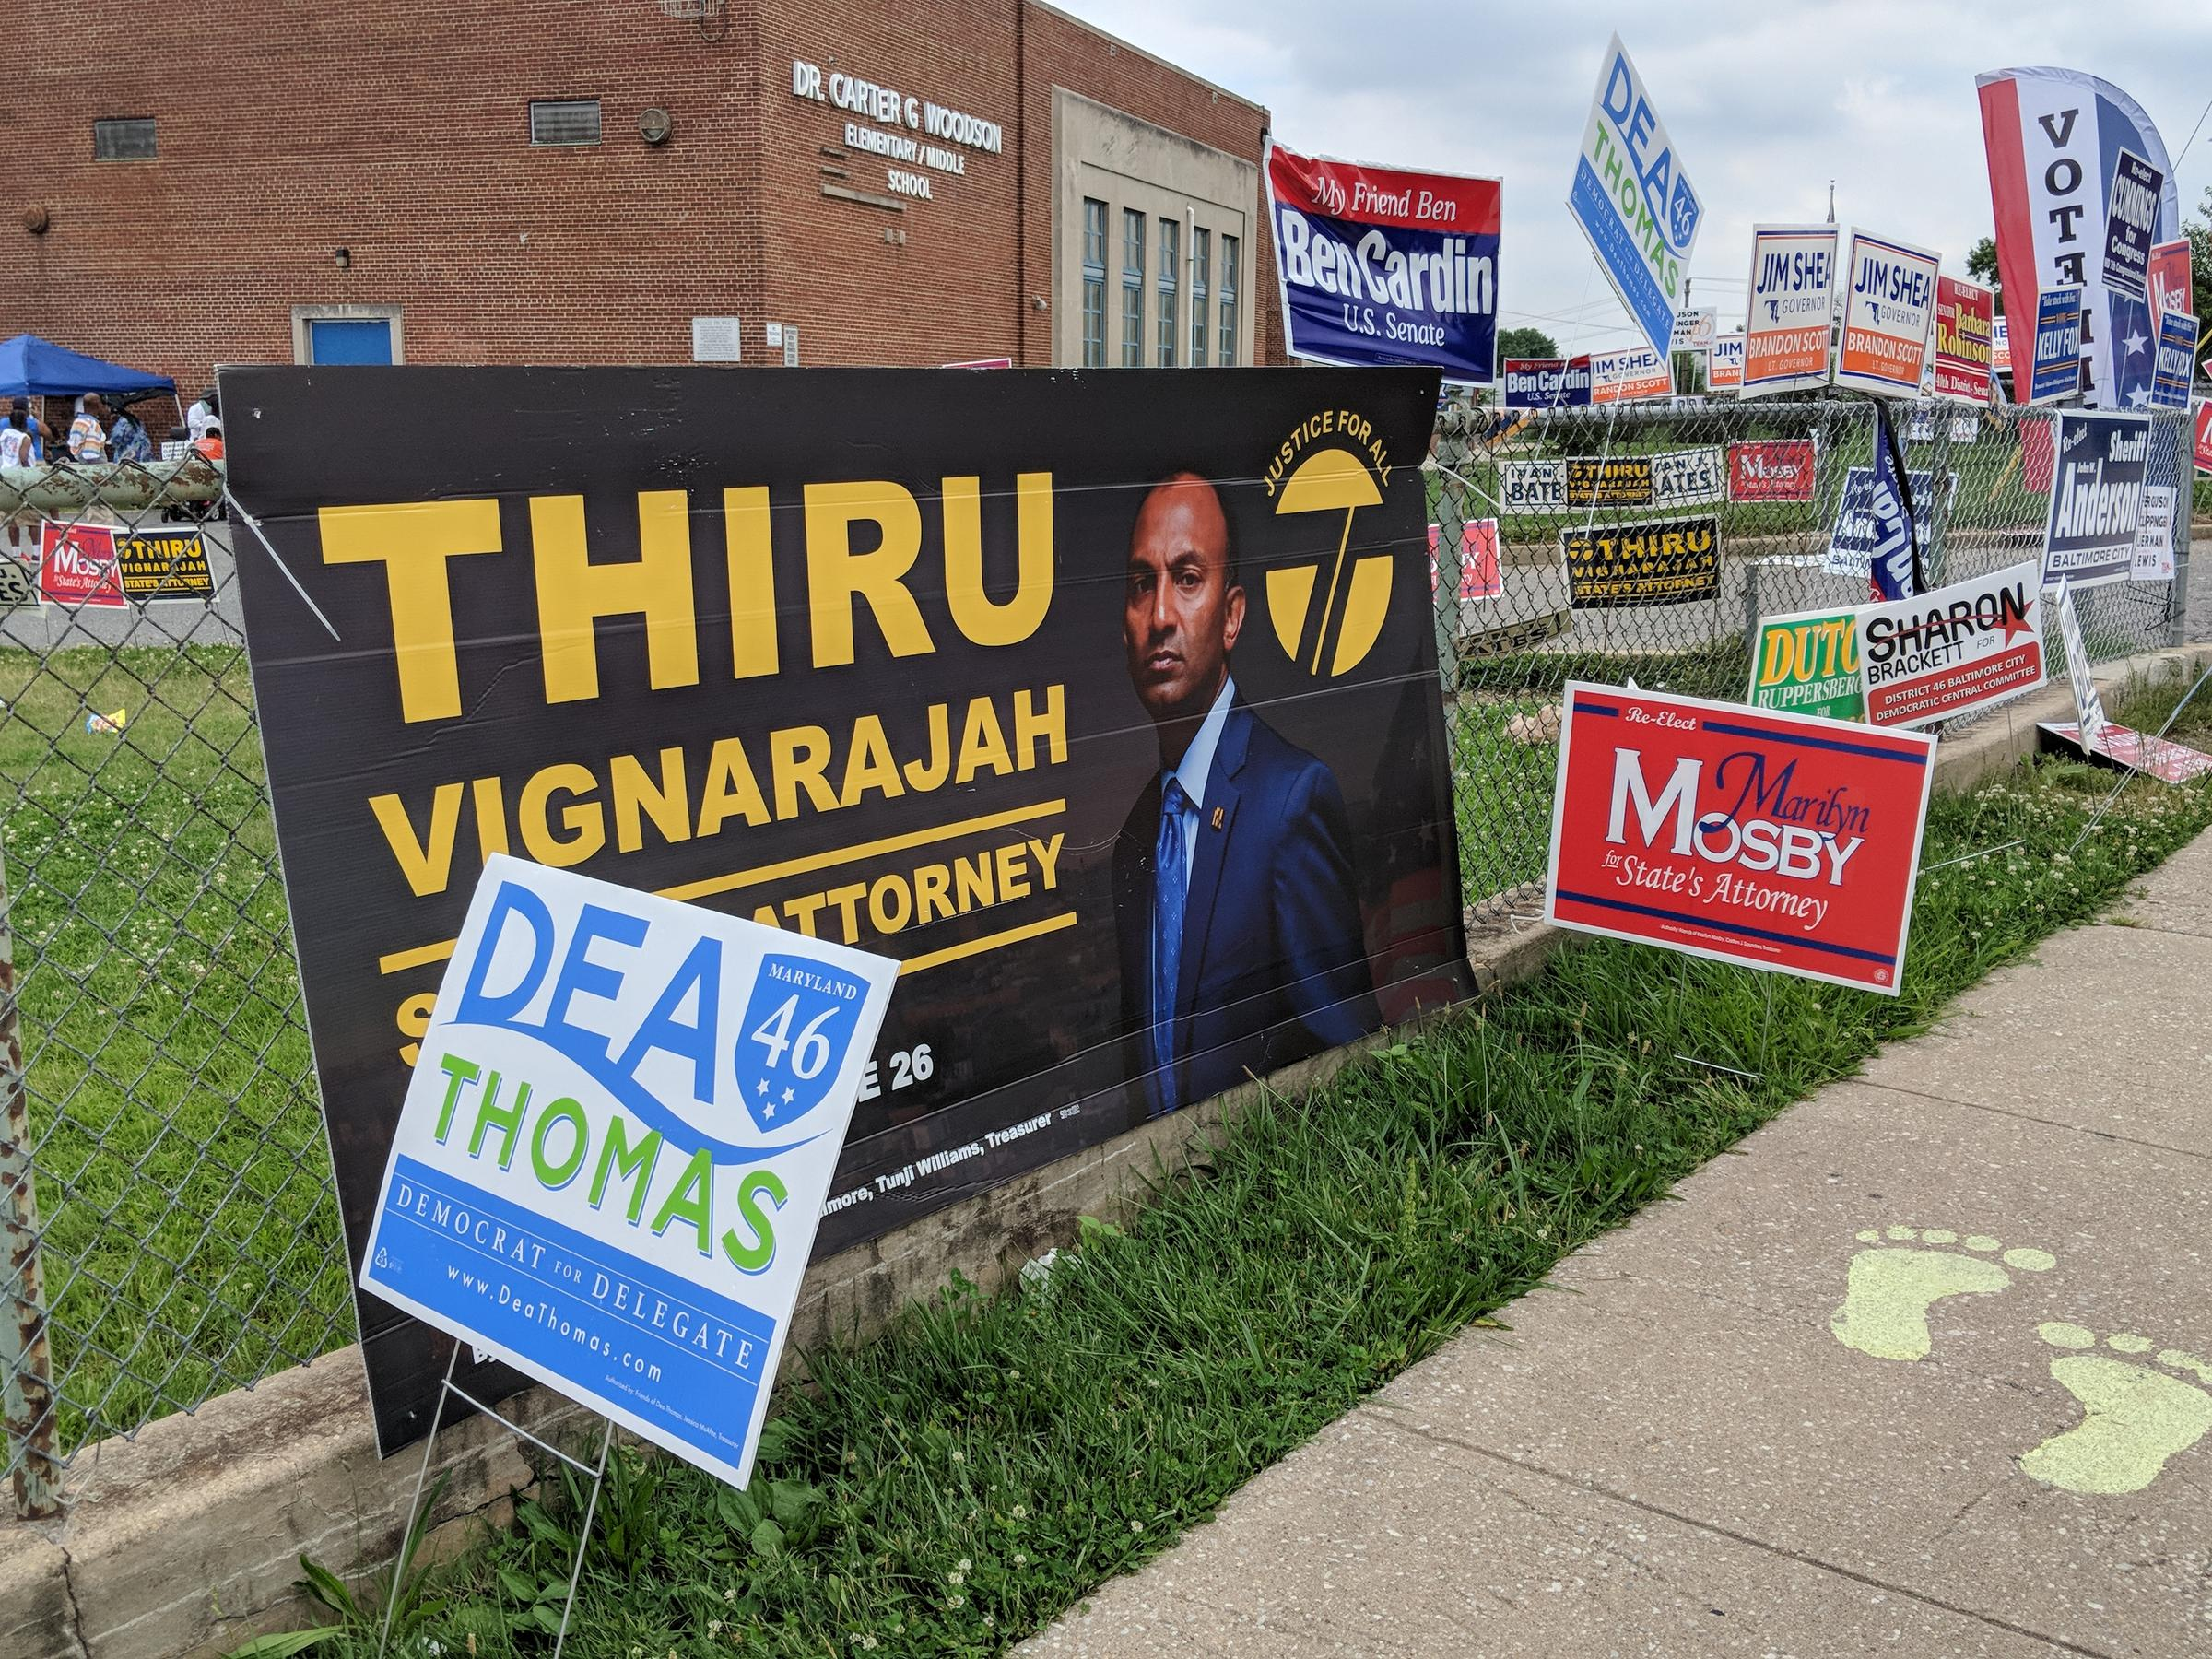 2018 md. Primary guide: crowded field of candidates seek.